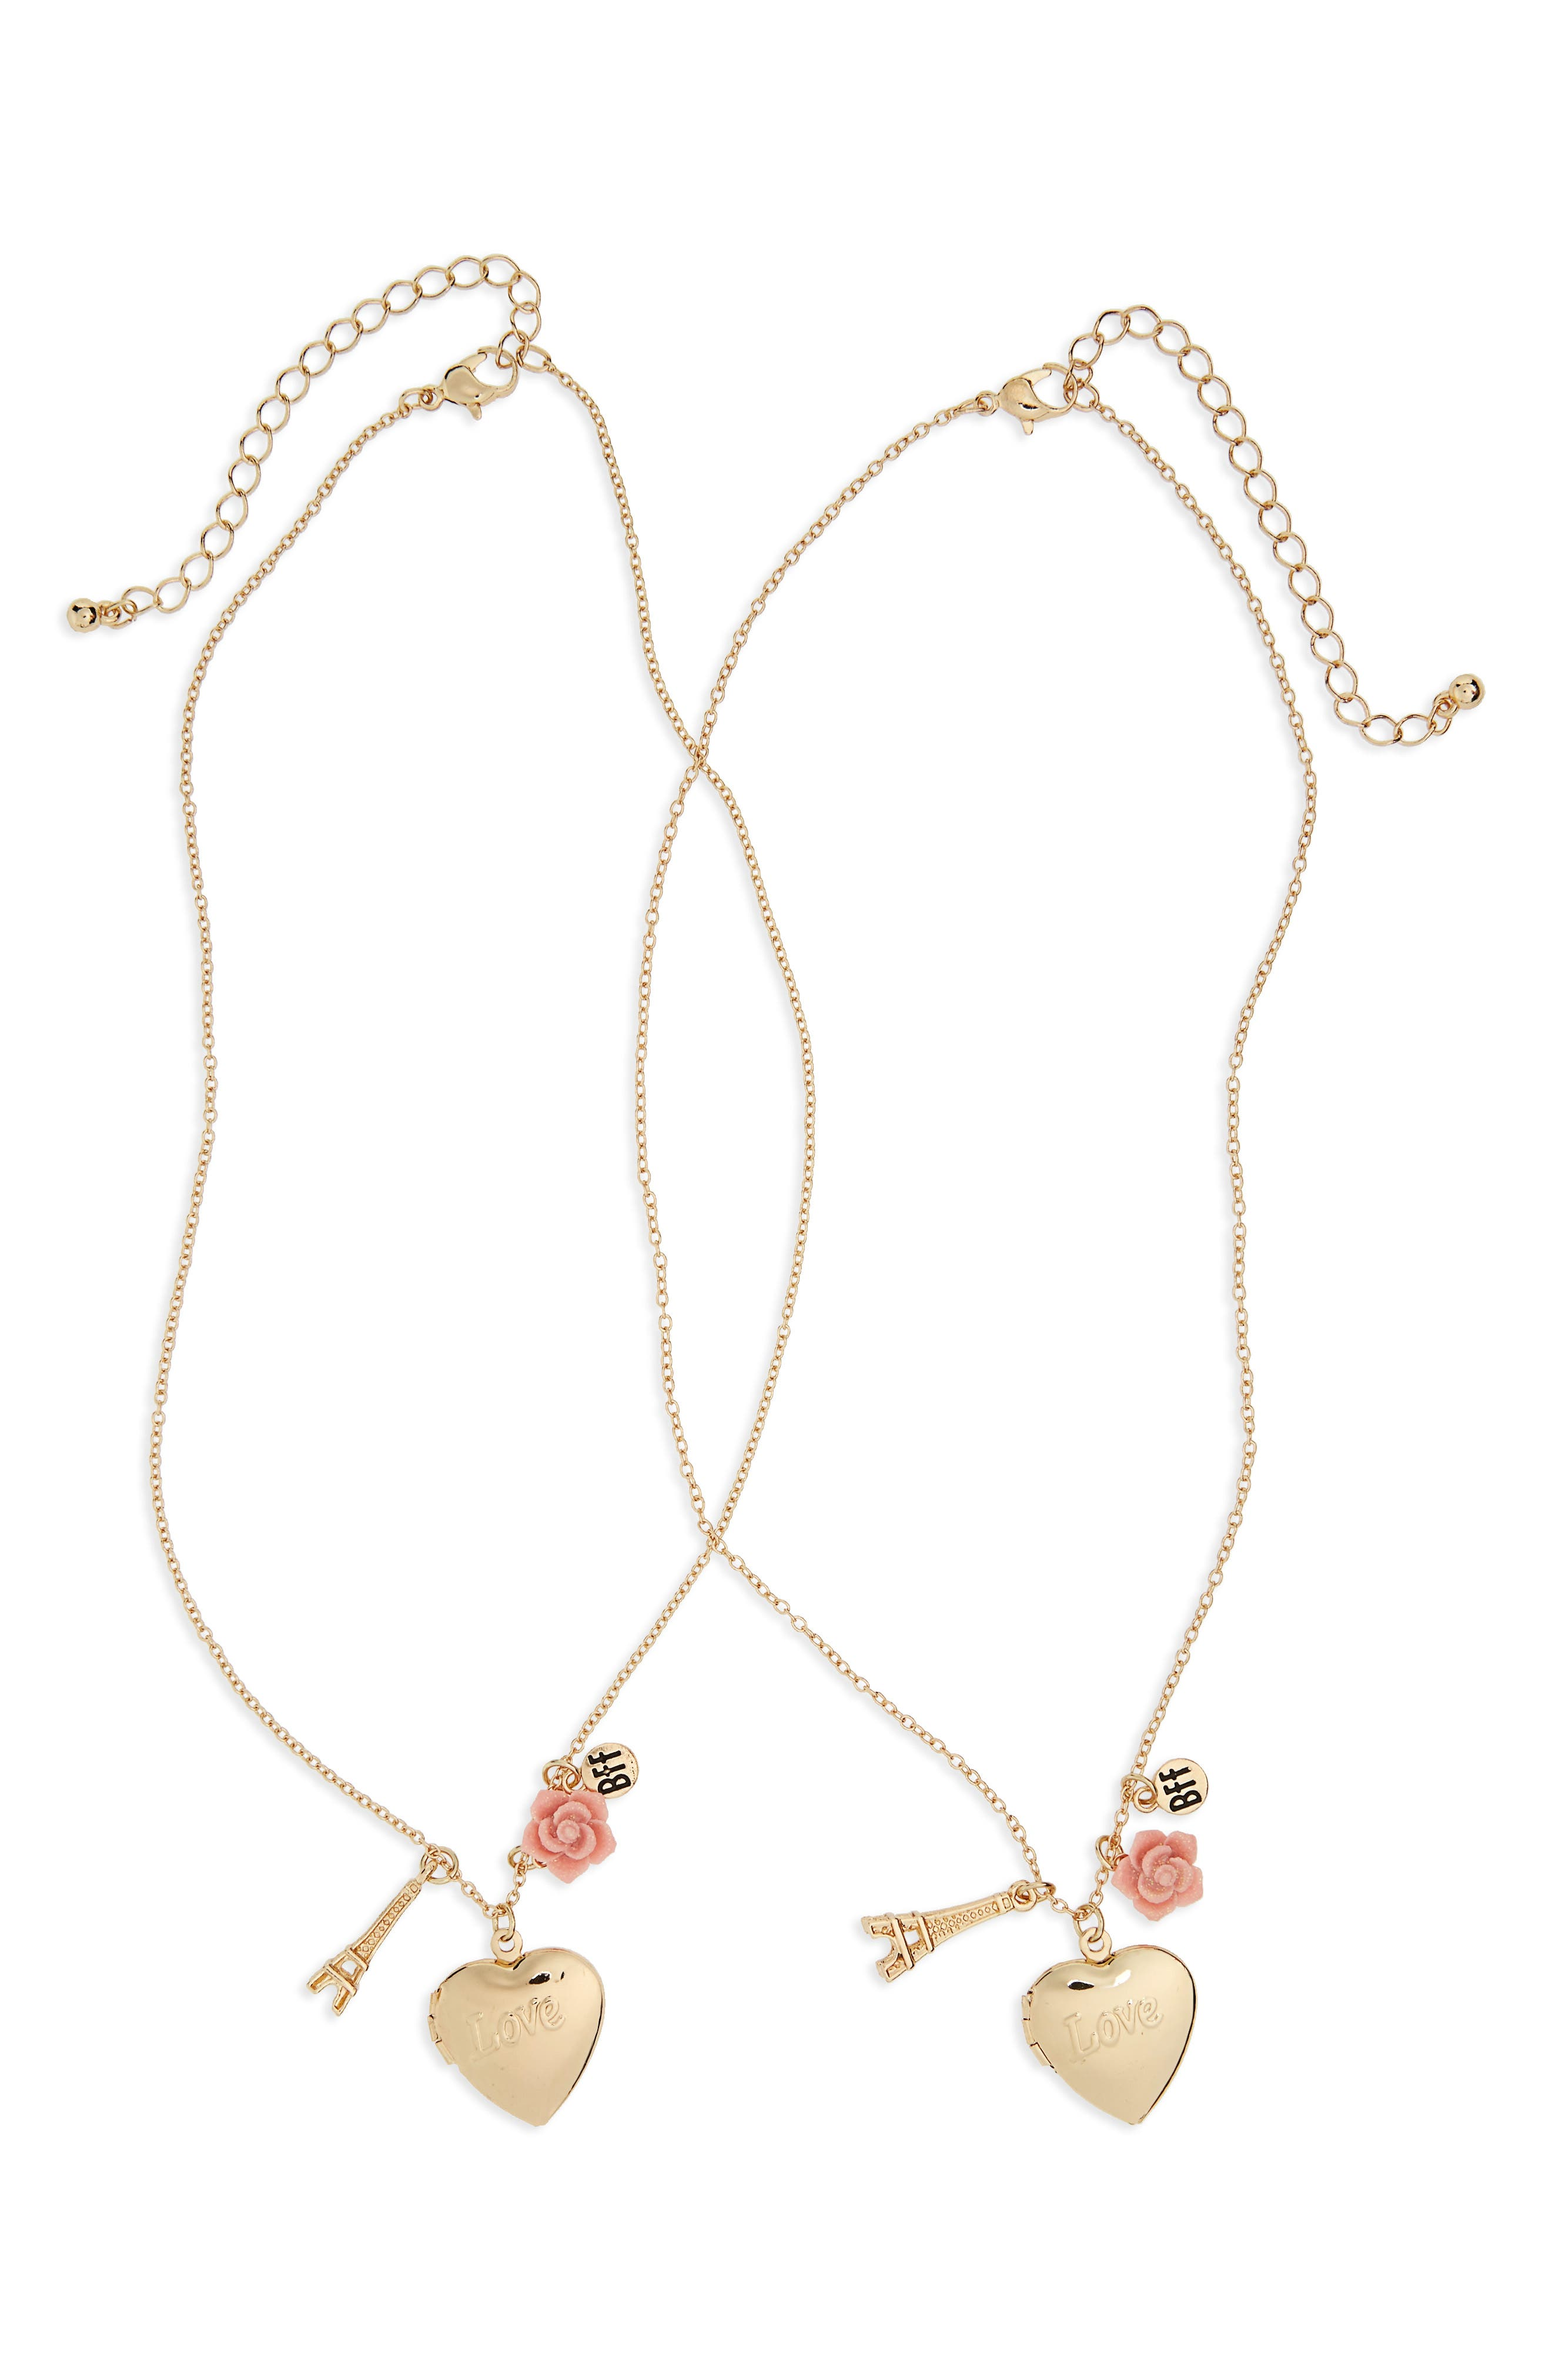 Capelli of New York Set of 2 Heart Paris BFF Necklaces (Girls)